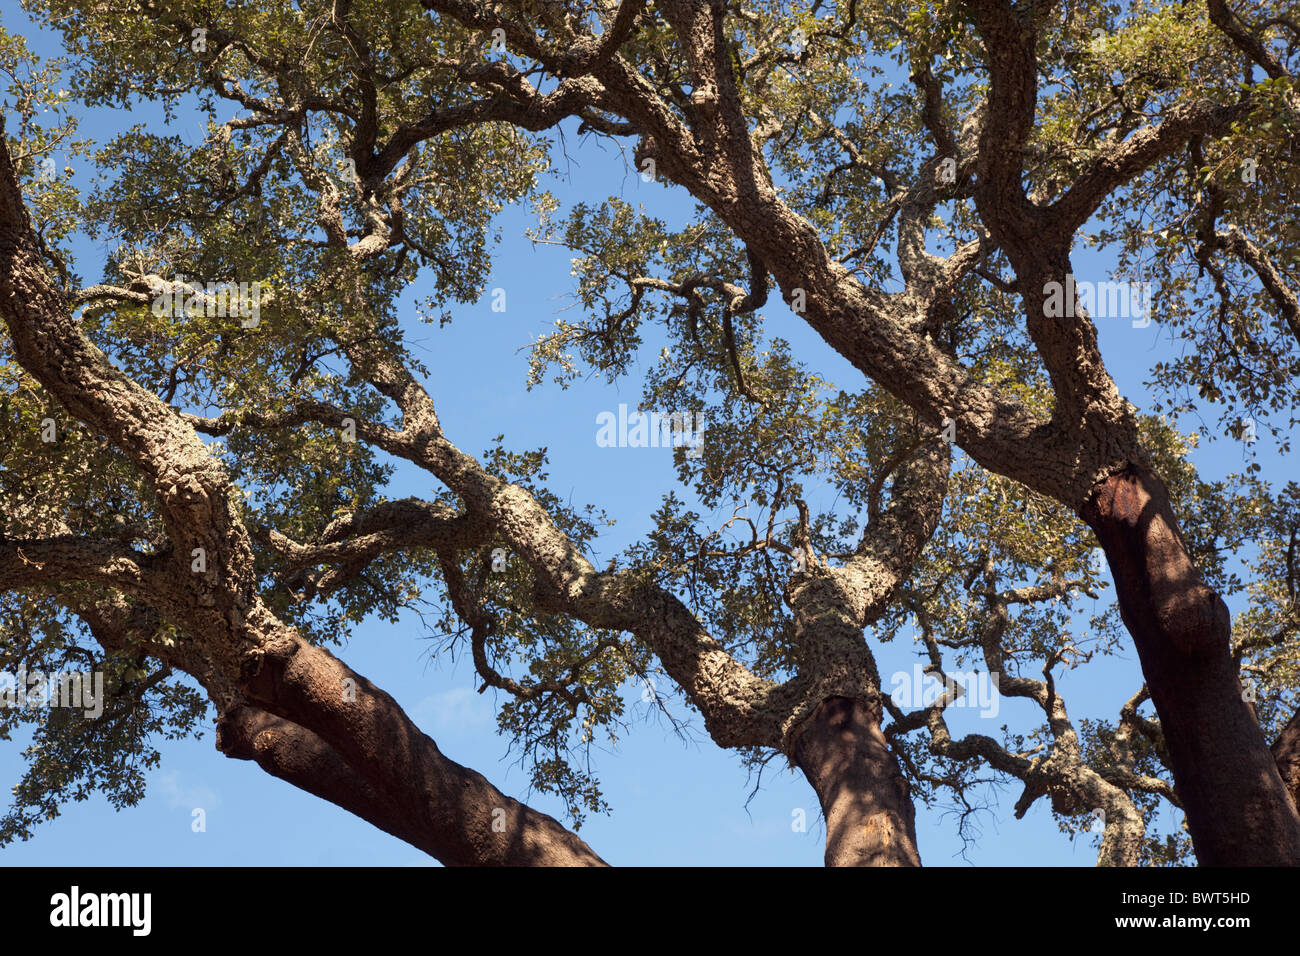 Branches of Cork Oak trees, Quercus suber, near Castellar de la Frontera, Cadiz Province, Spain. - Stock Image